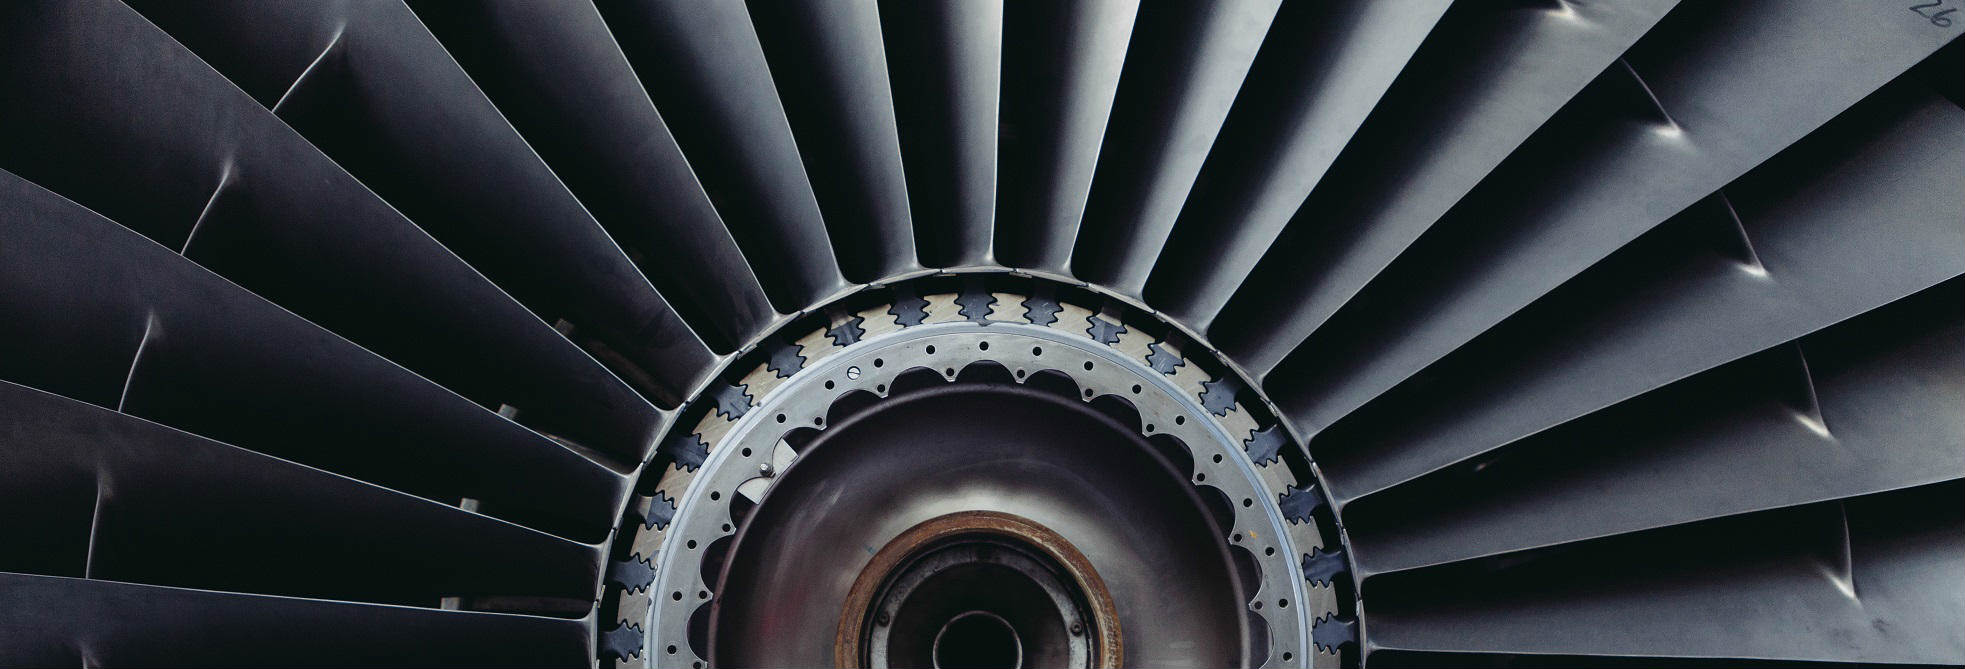 Picture of aircraft jet engine